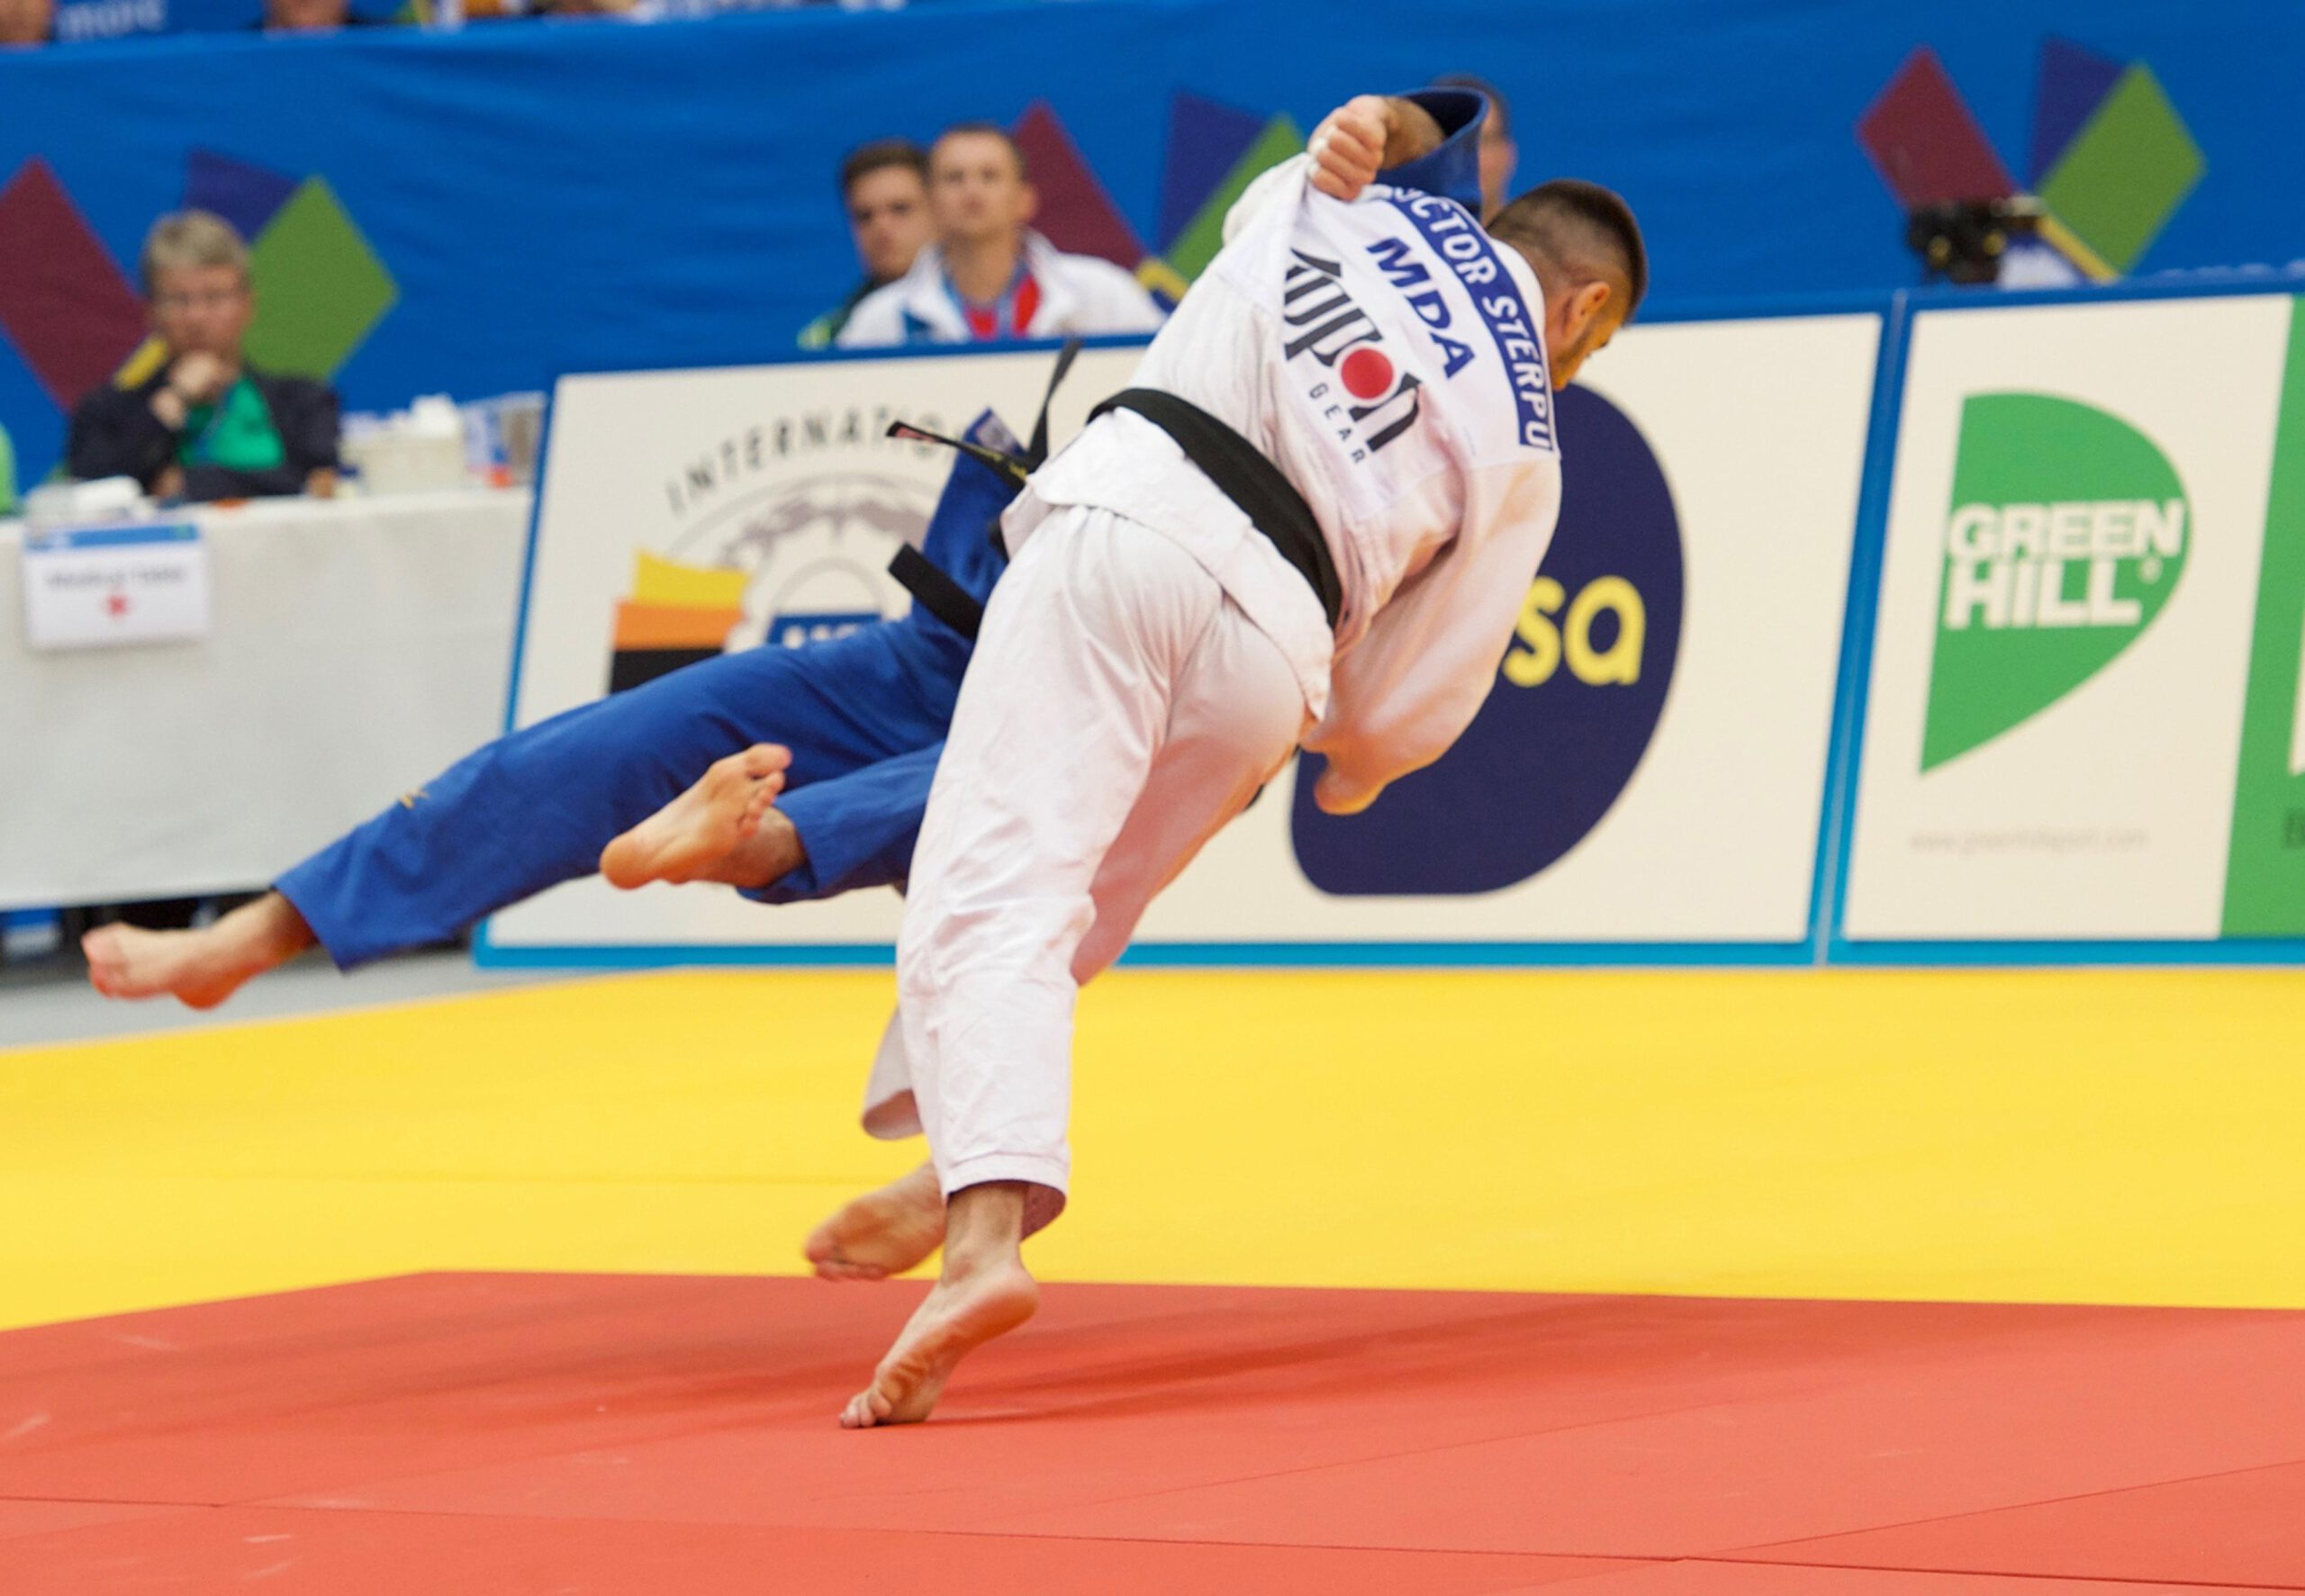 MANY CONTINUE THEIR CONTINENTAL CHAMPIONSHIP JOURNEY IN POREC